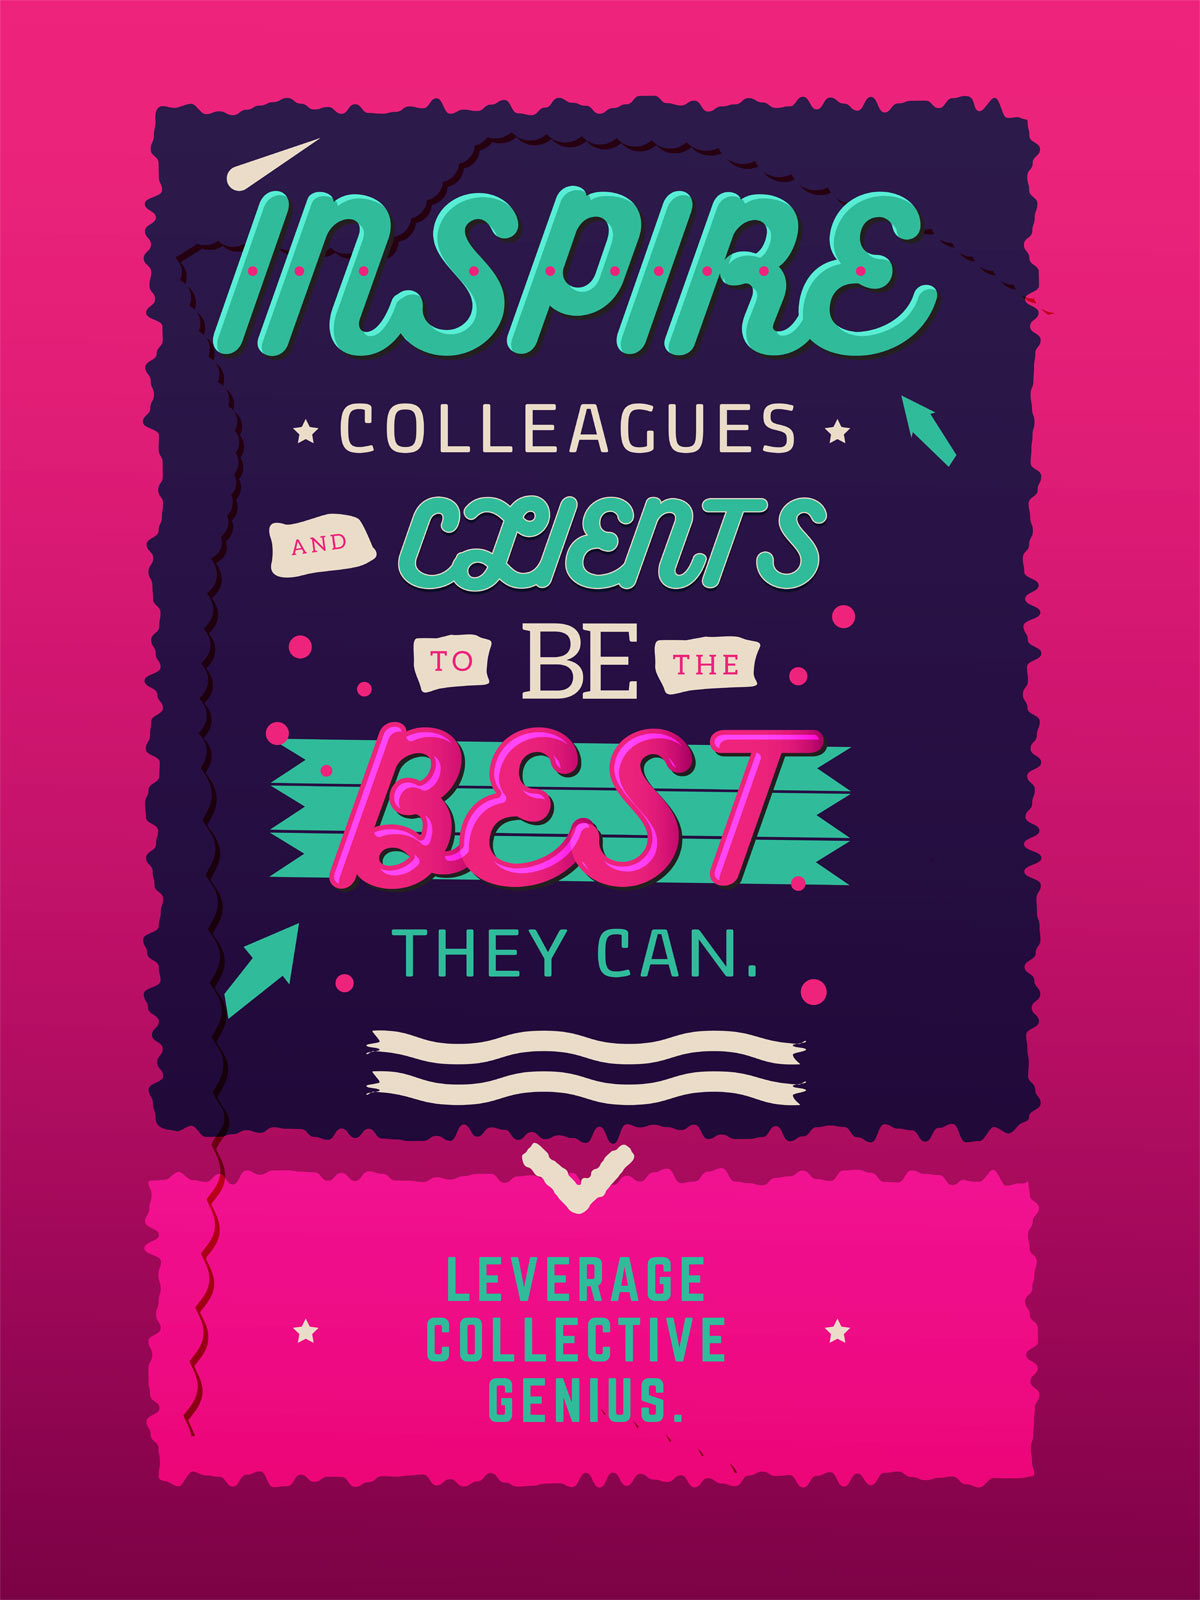 Inspire colleagues and clients to be the best they can. Leverage collective genius.